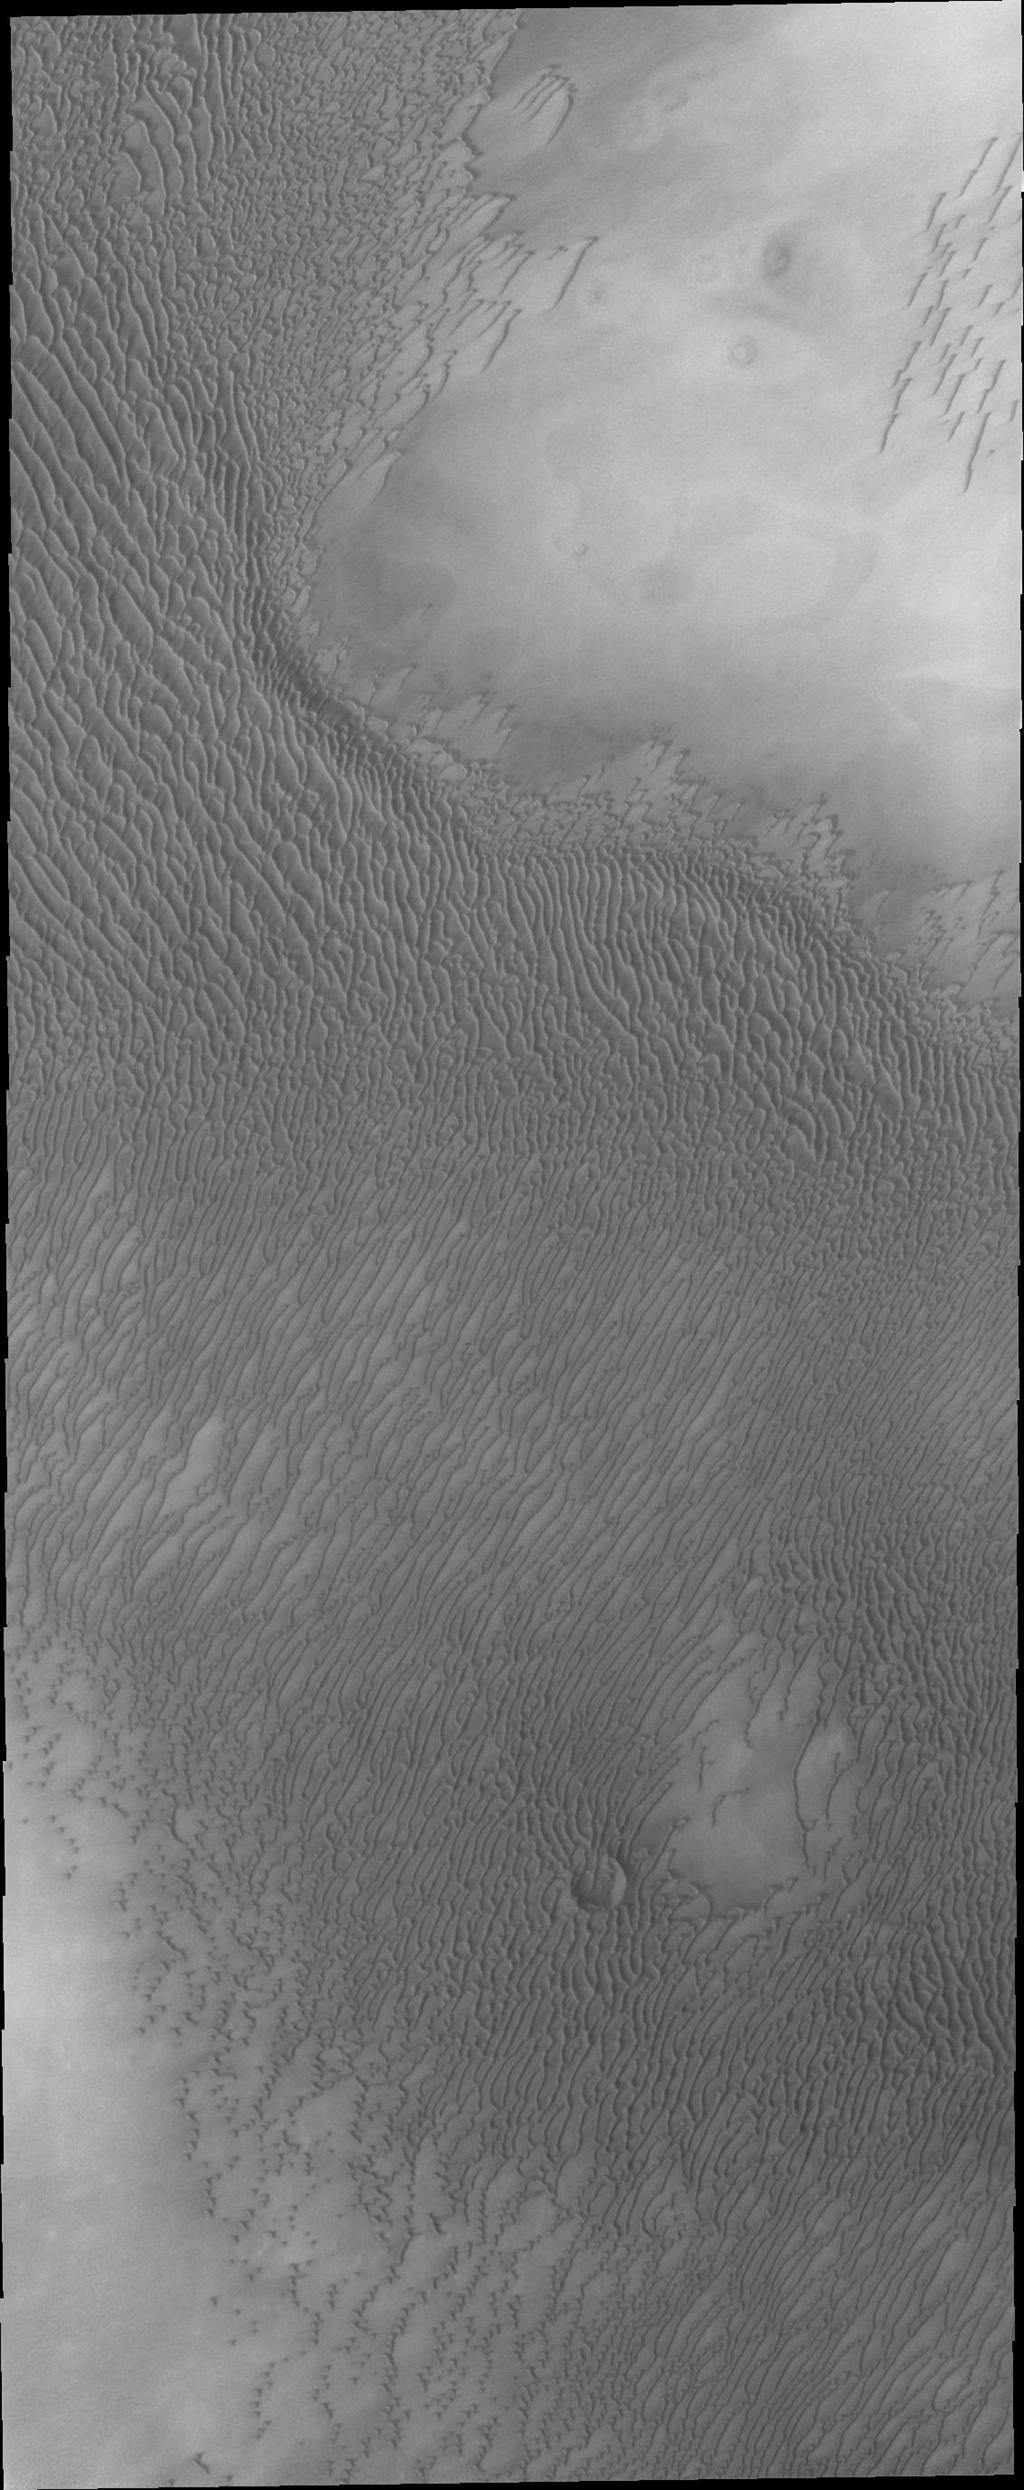 The appearance of the dunes in the North Polar Erg (or sand sea) changes as the seasons move from winter to summer. This summer image from NASA's Mars Odyssey shows the dunes totally free of frost.